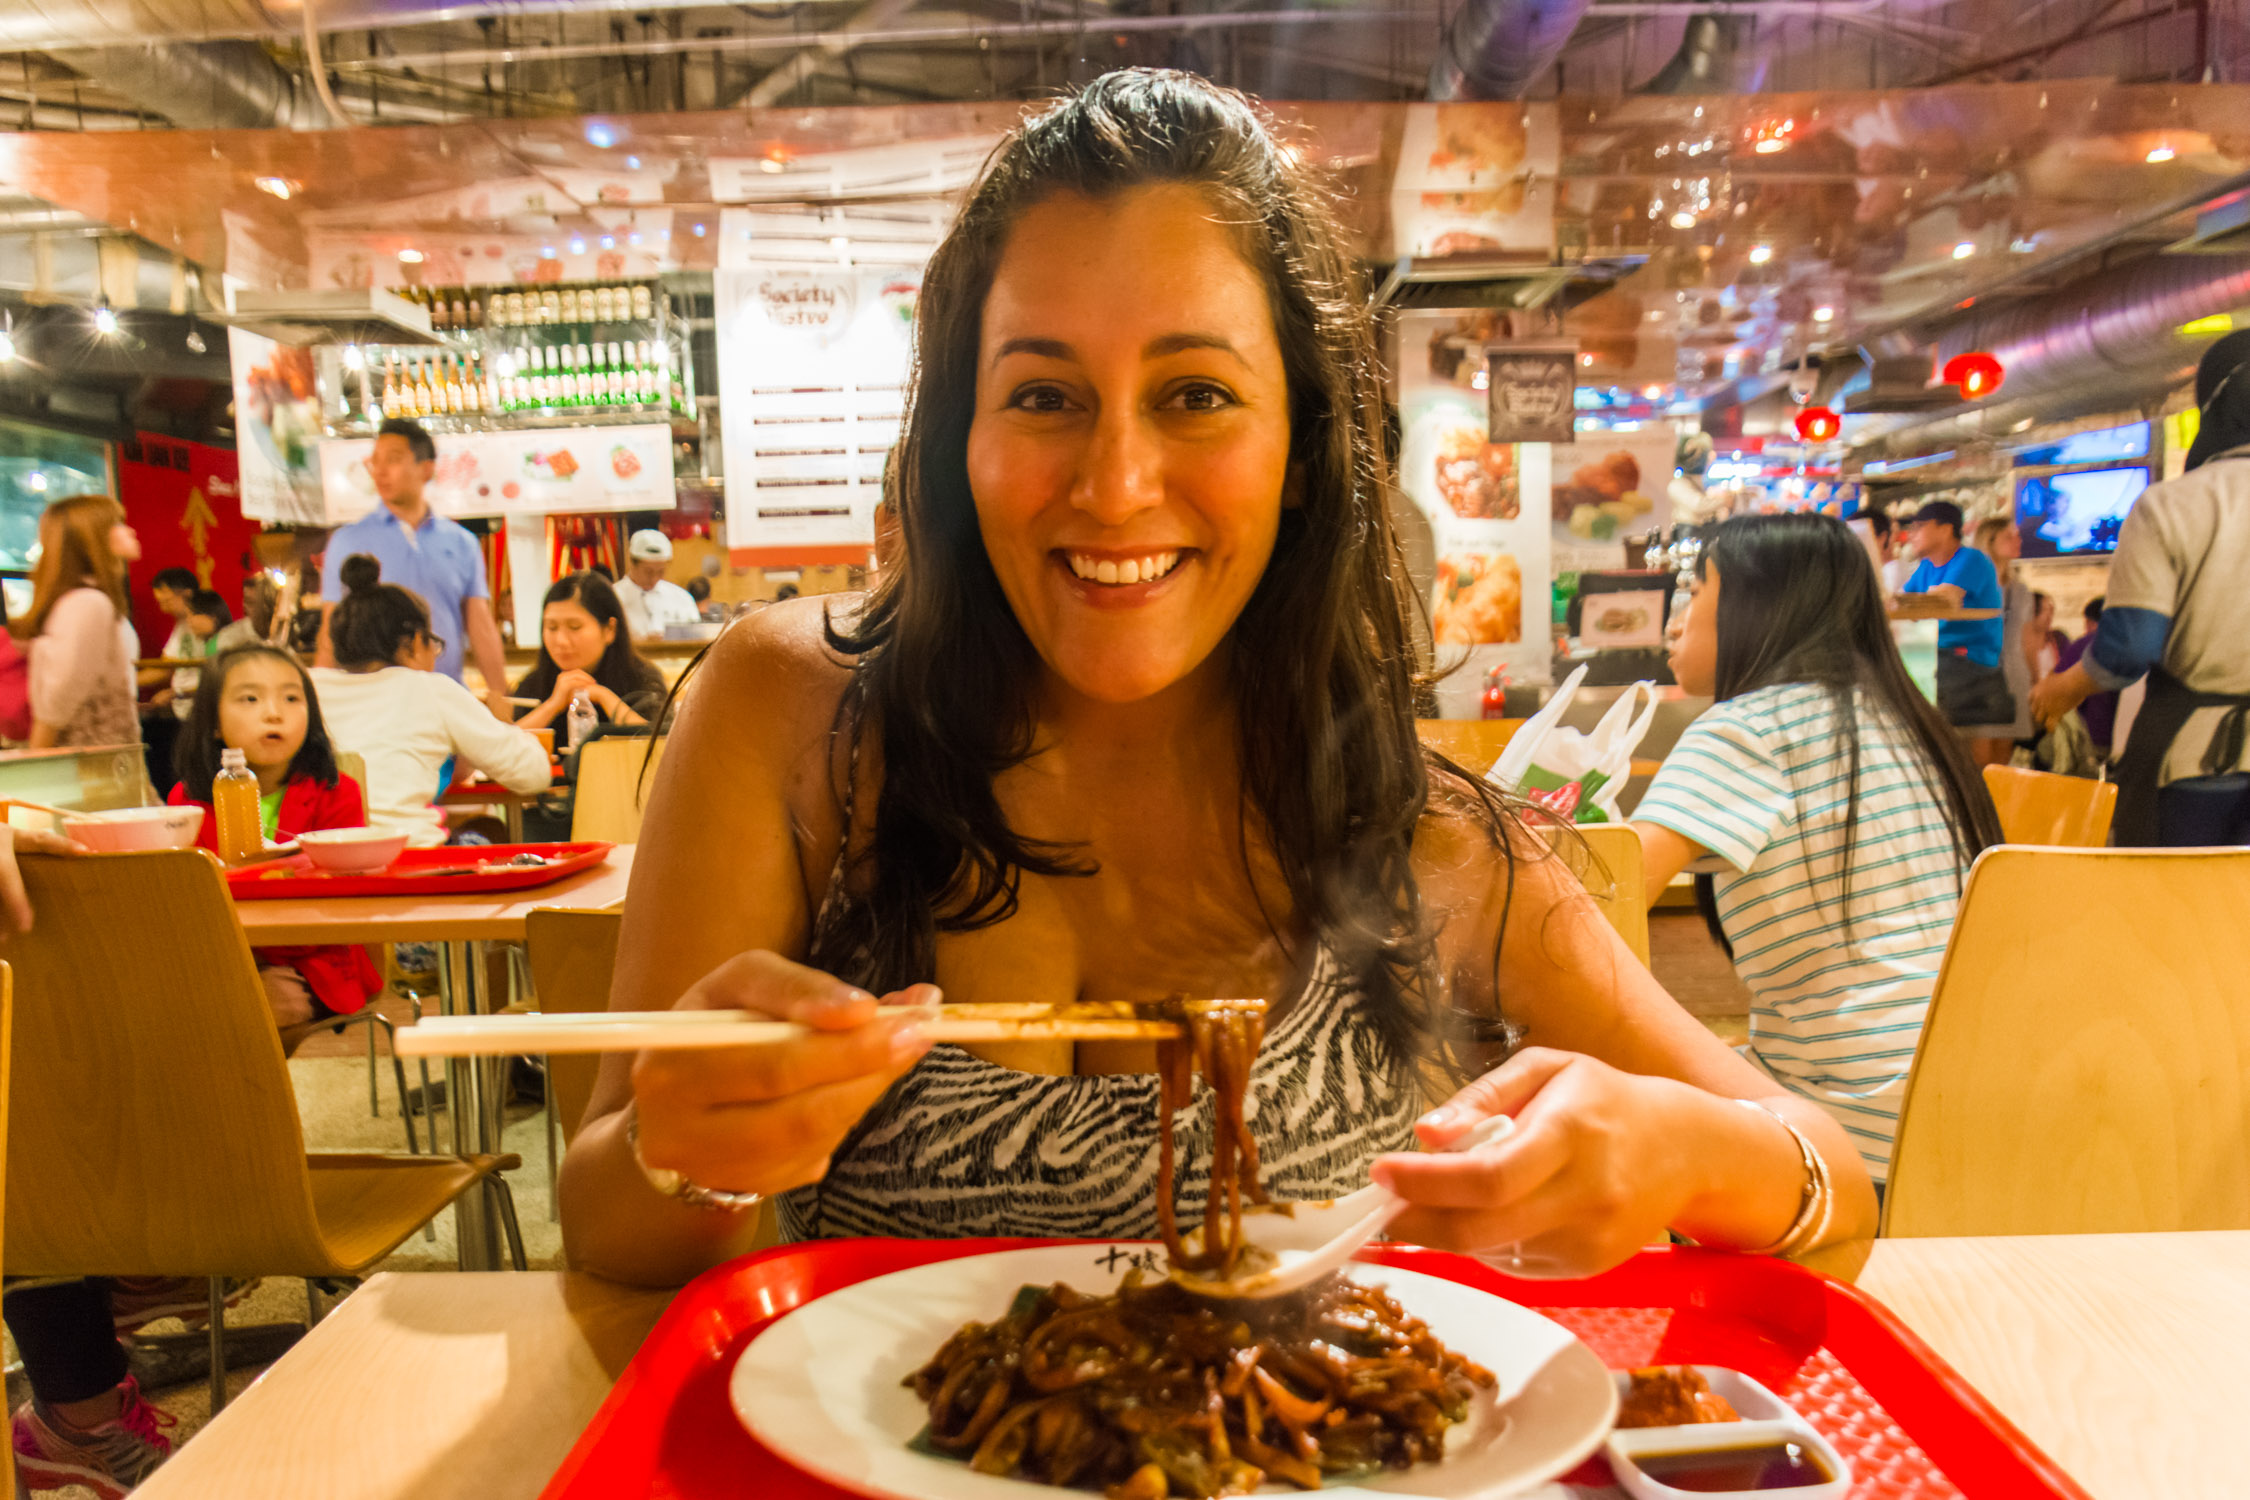 Danika diving into Hokkien Mee fried noodles at Lot 10